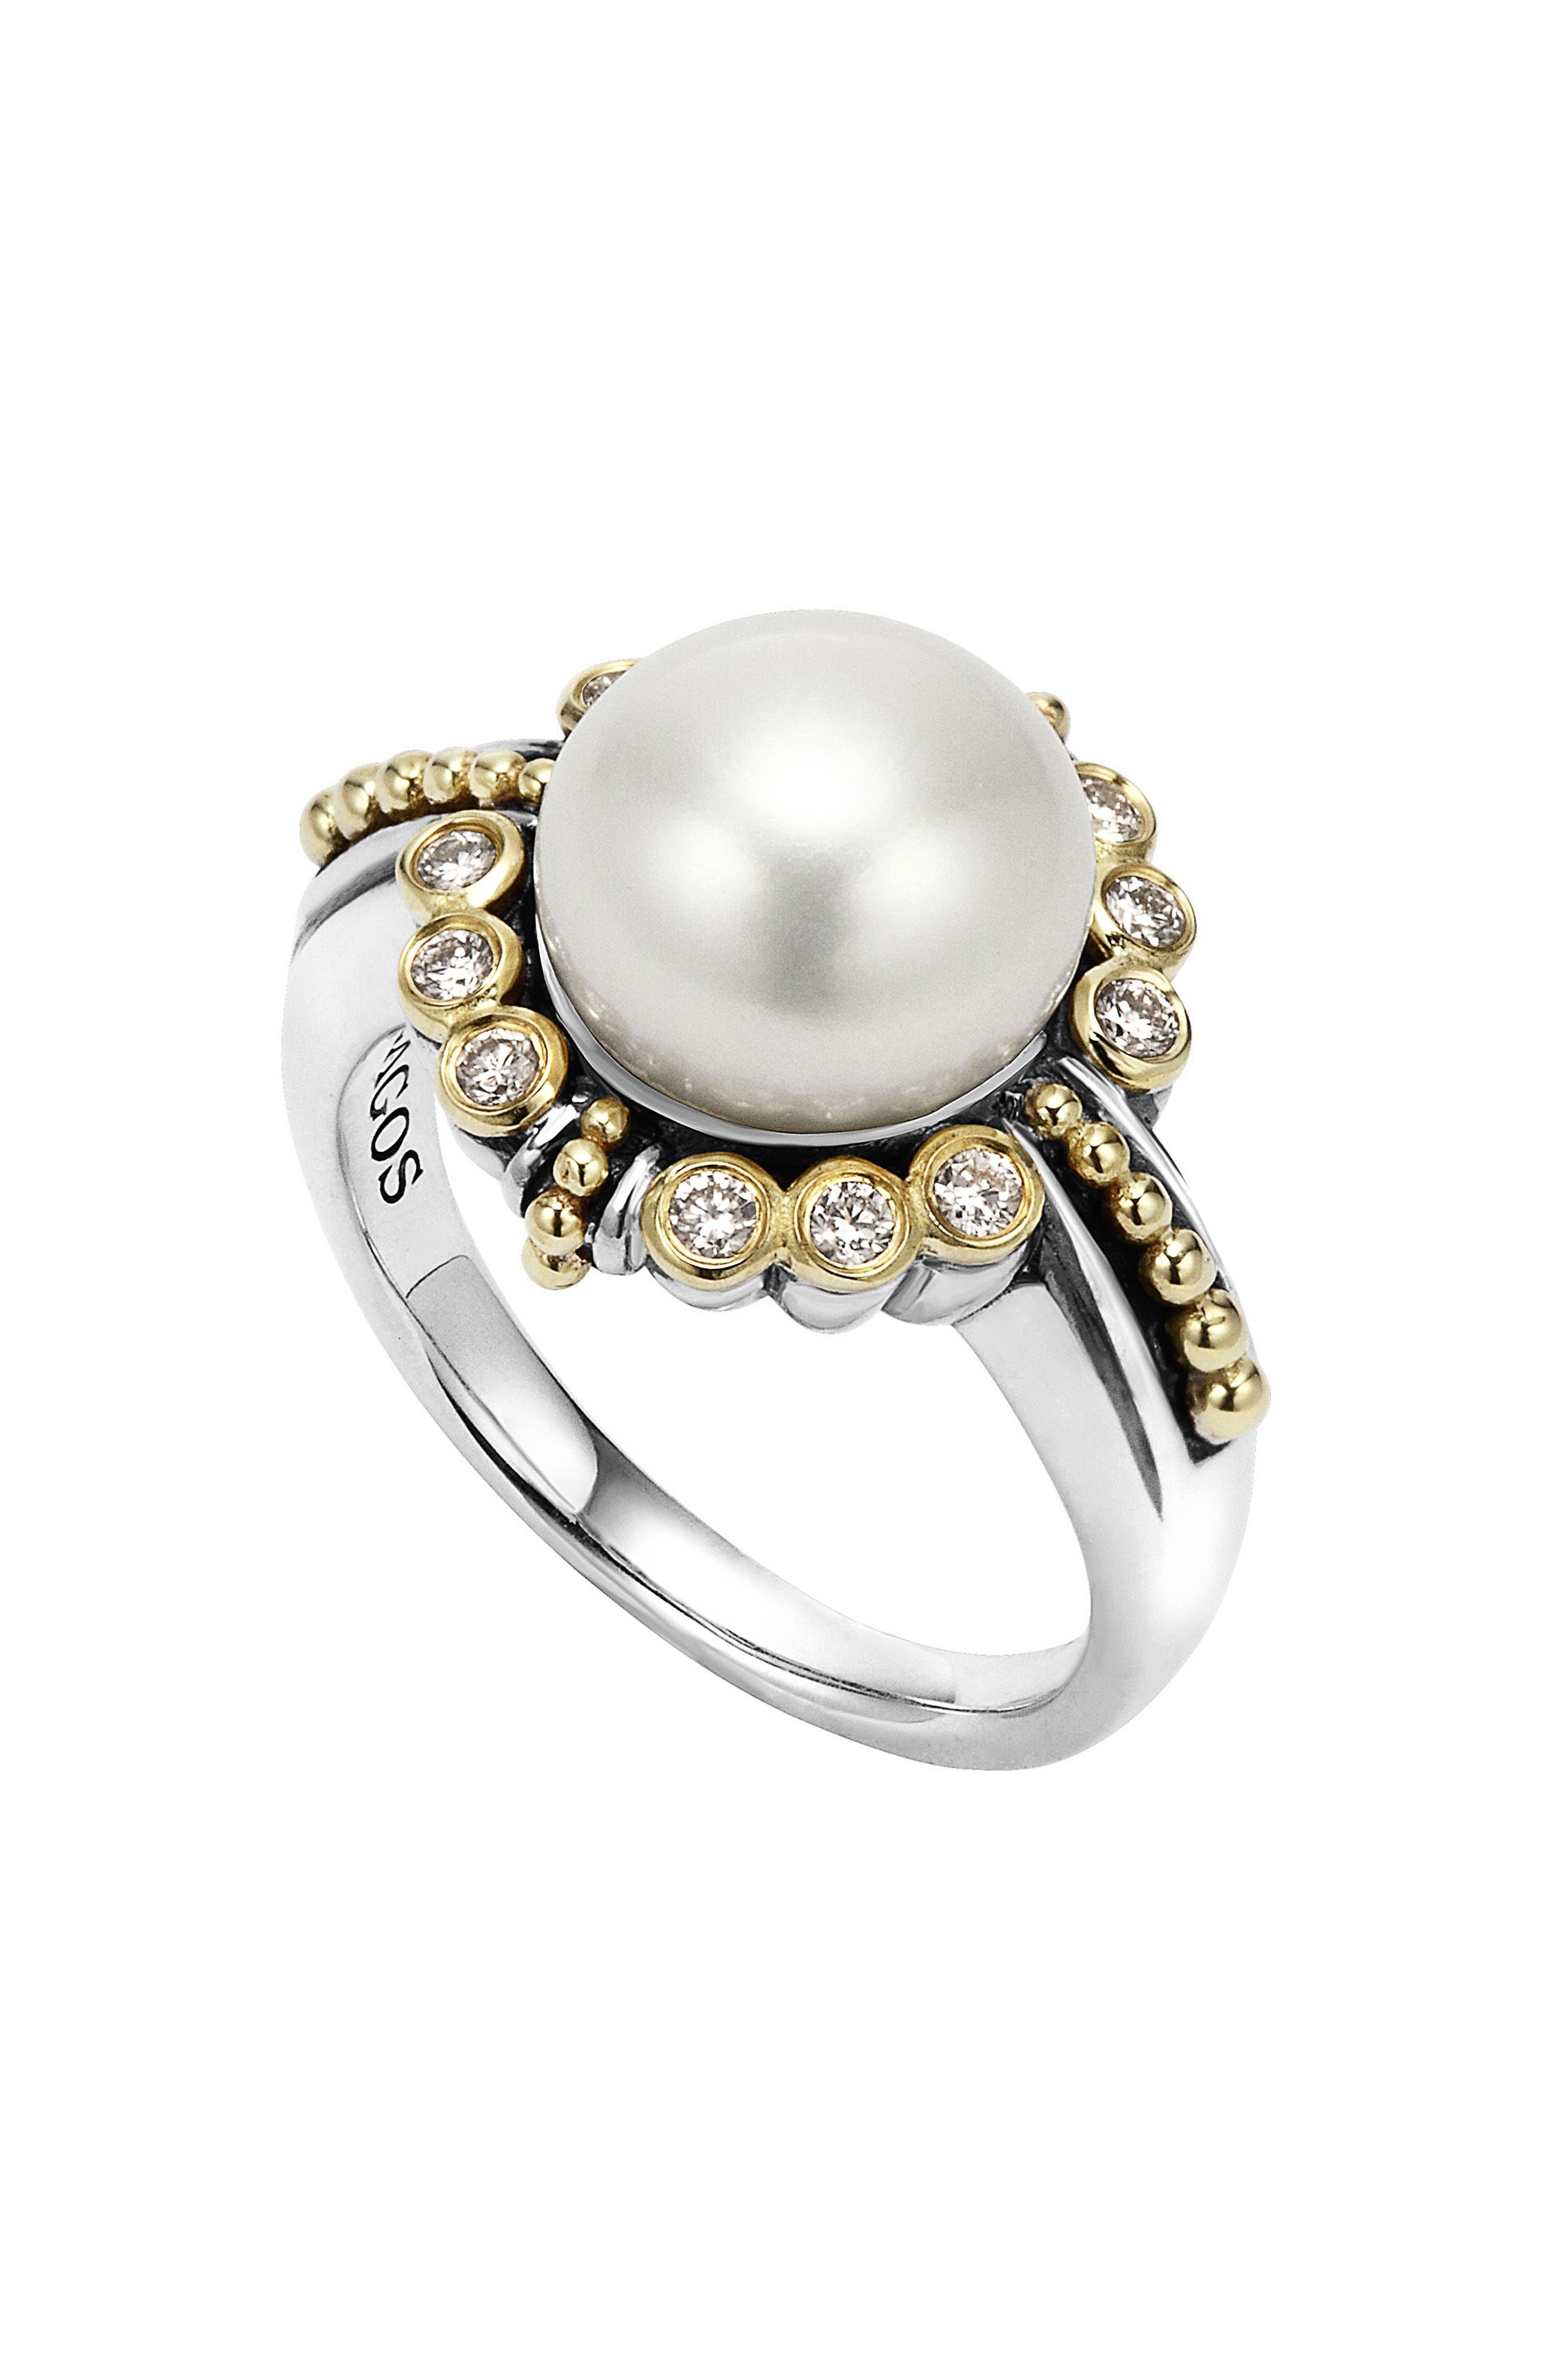 Main Image - LAGOS Luna Diamond & Pearl Ring